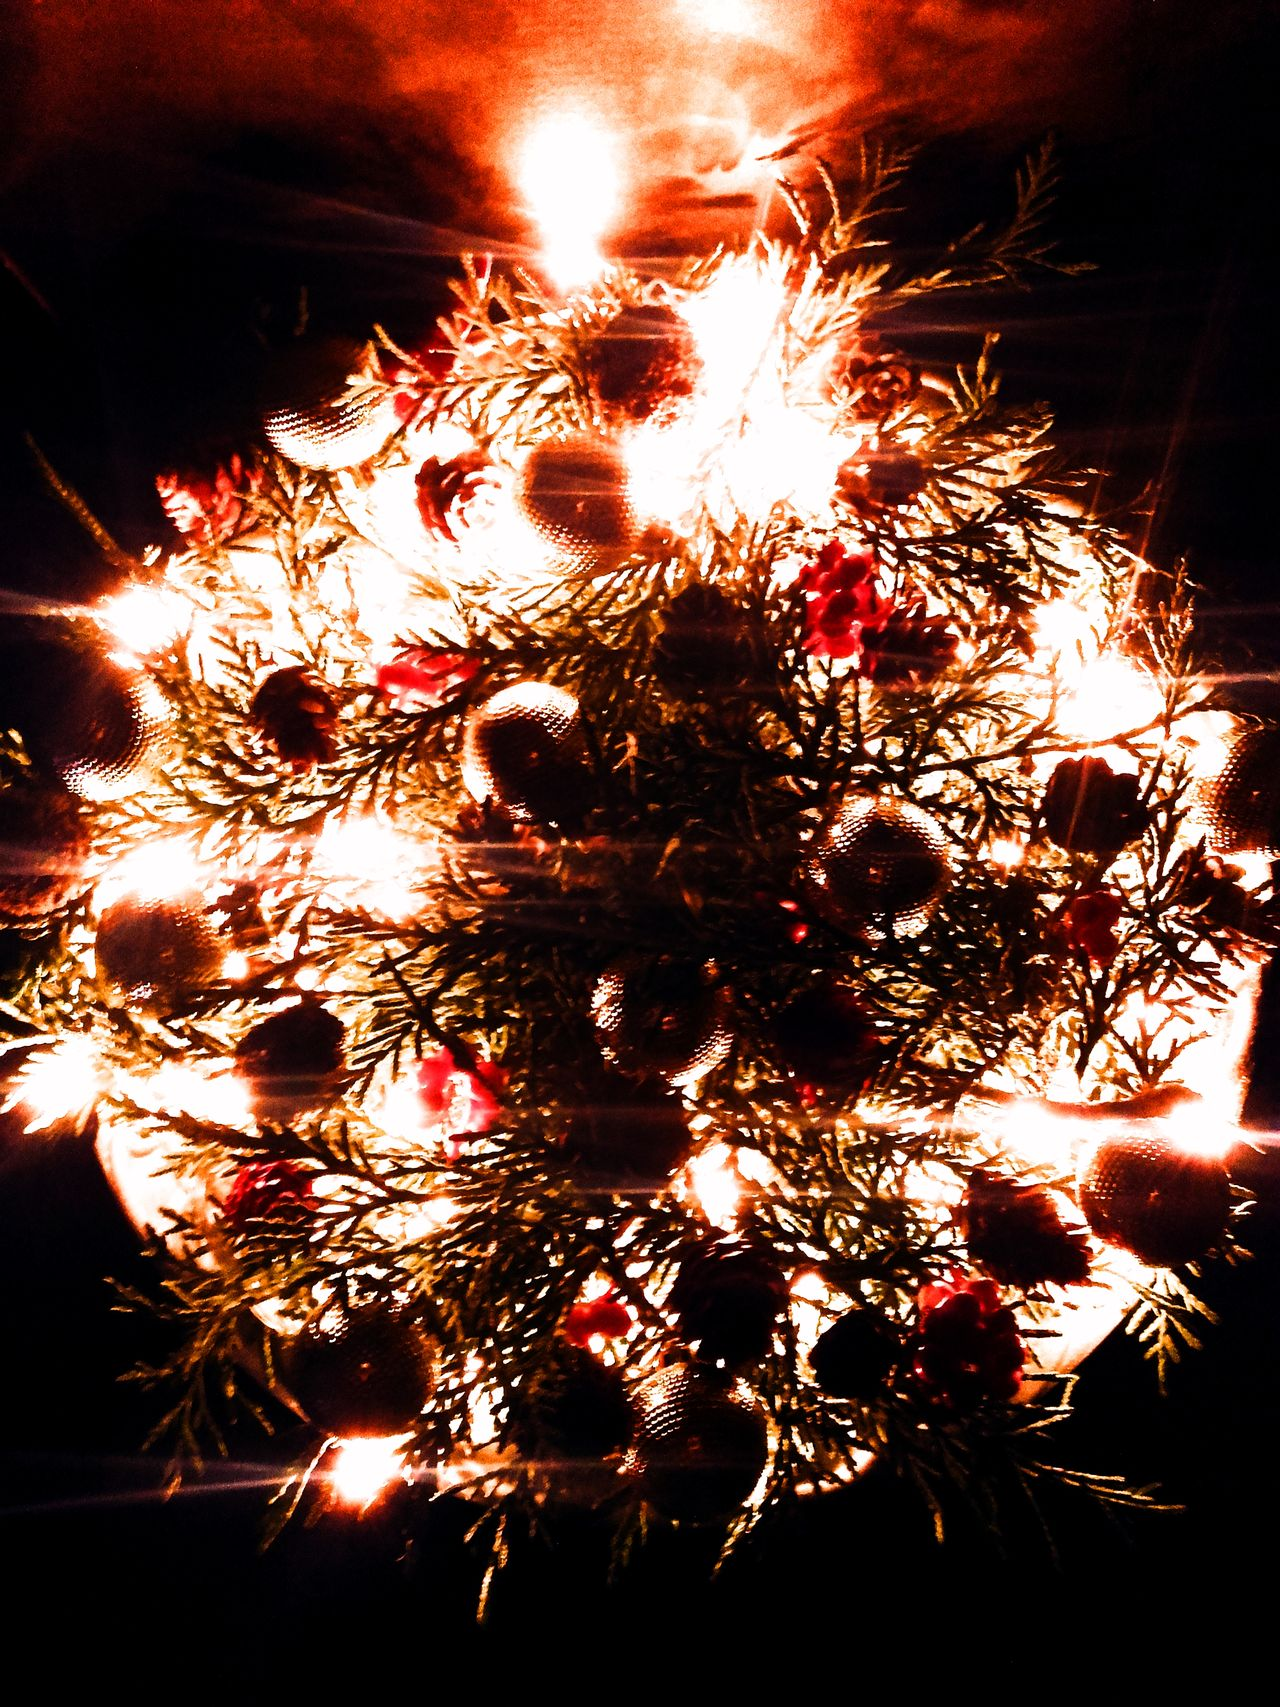 Wish All A Perfect, Nice, Beautiful And Peacefull Christmastime